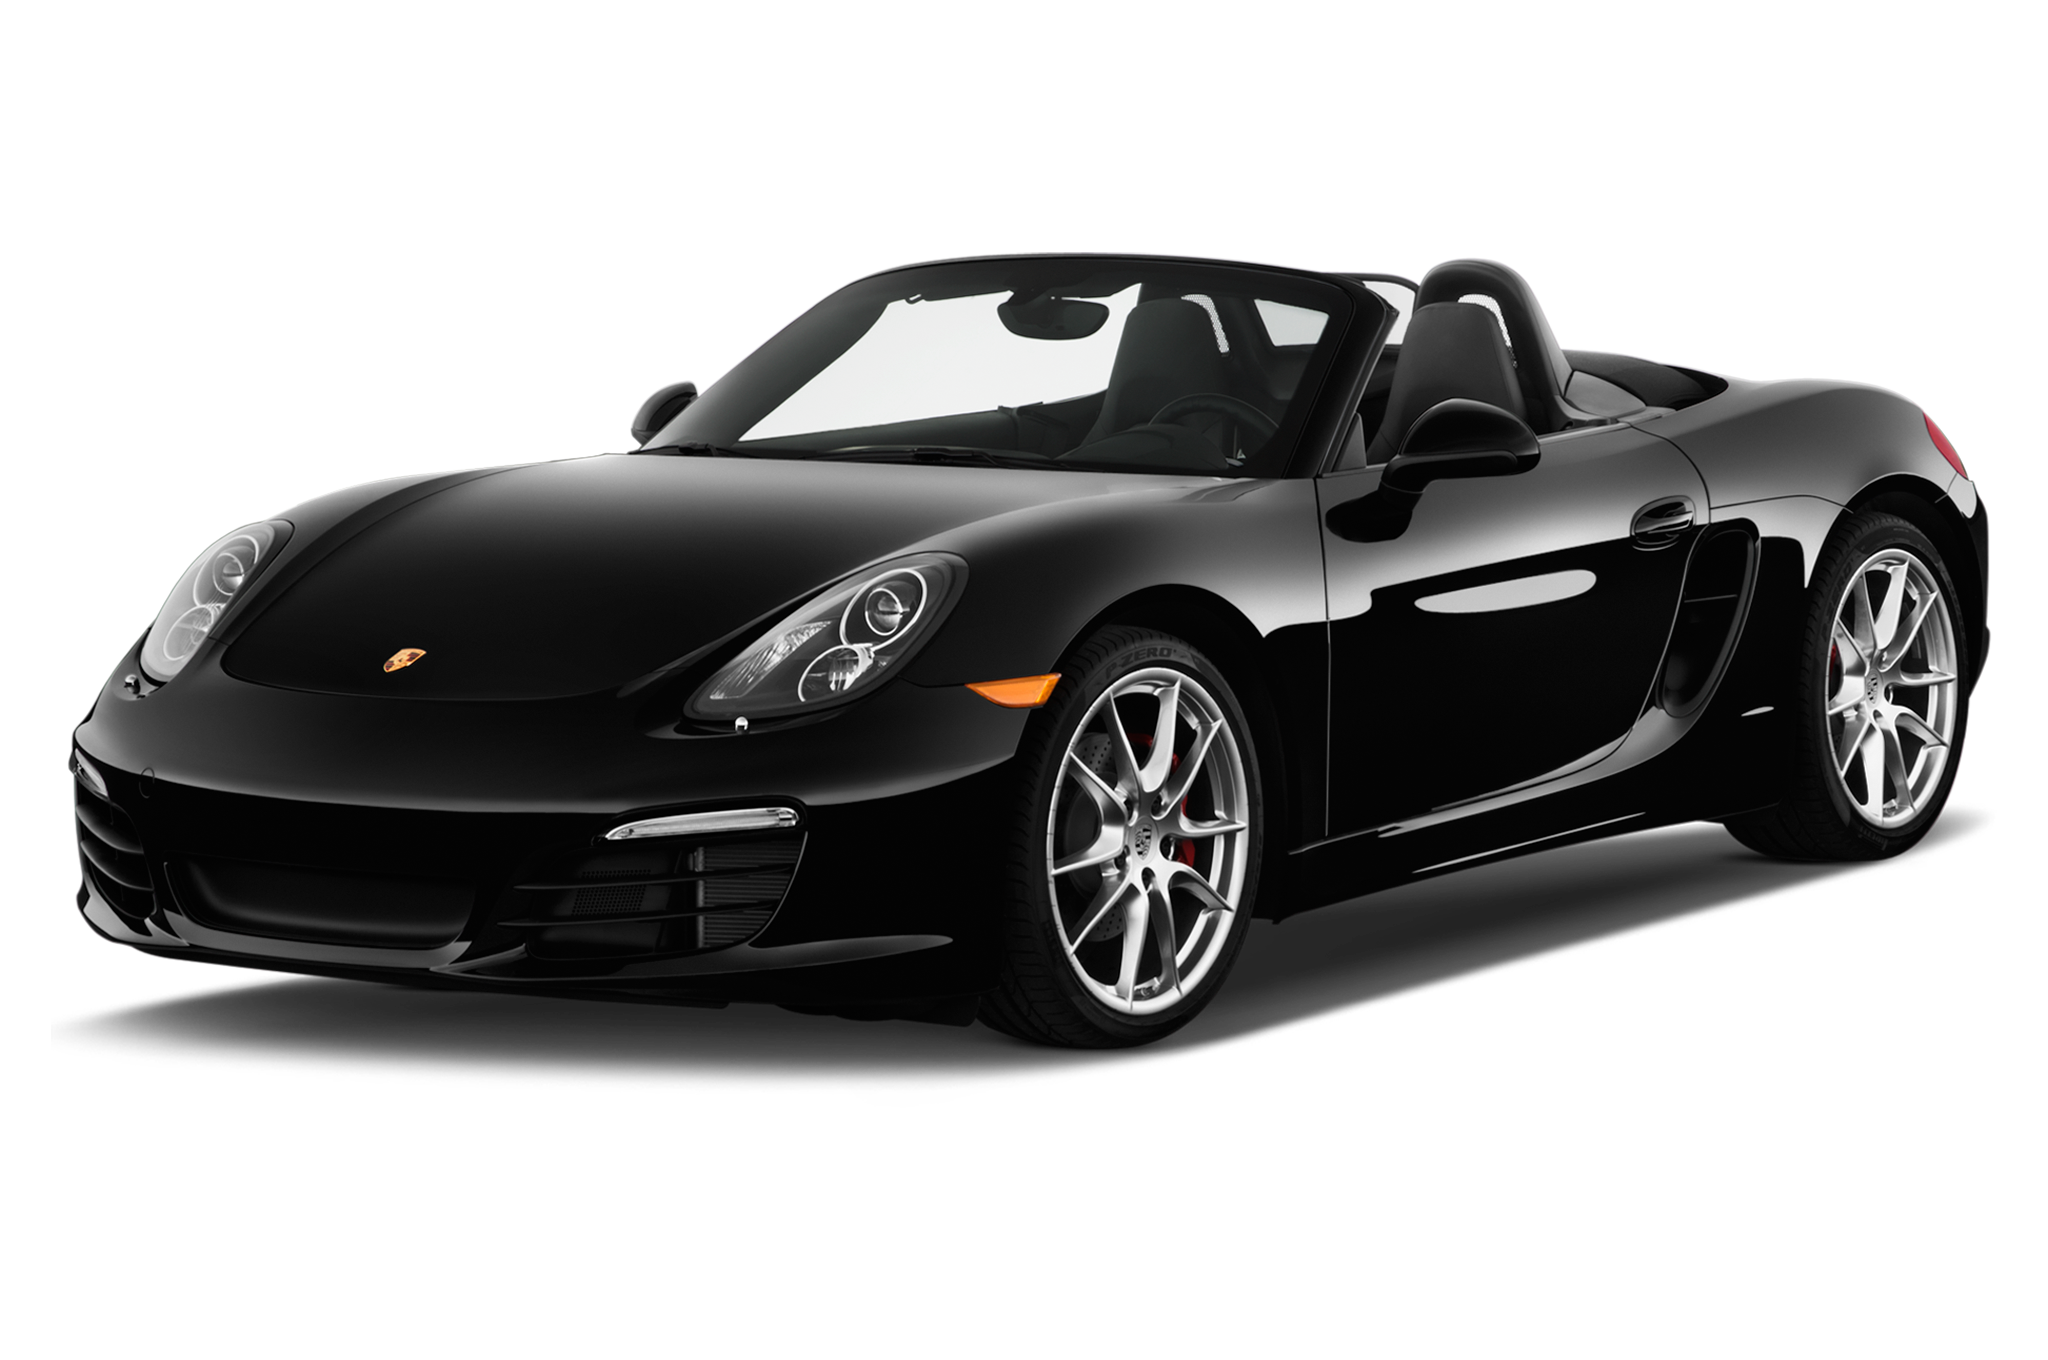 free vin check on porsche vehicles simply enter vin it 39 s. Black Bedroom Furniture Sets. Home Design Ideas